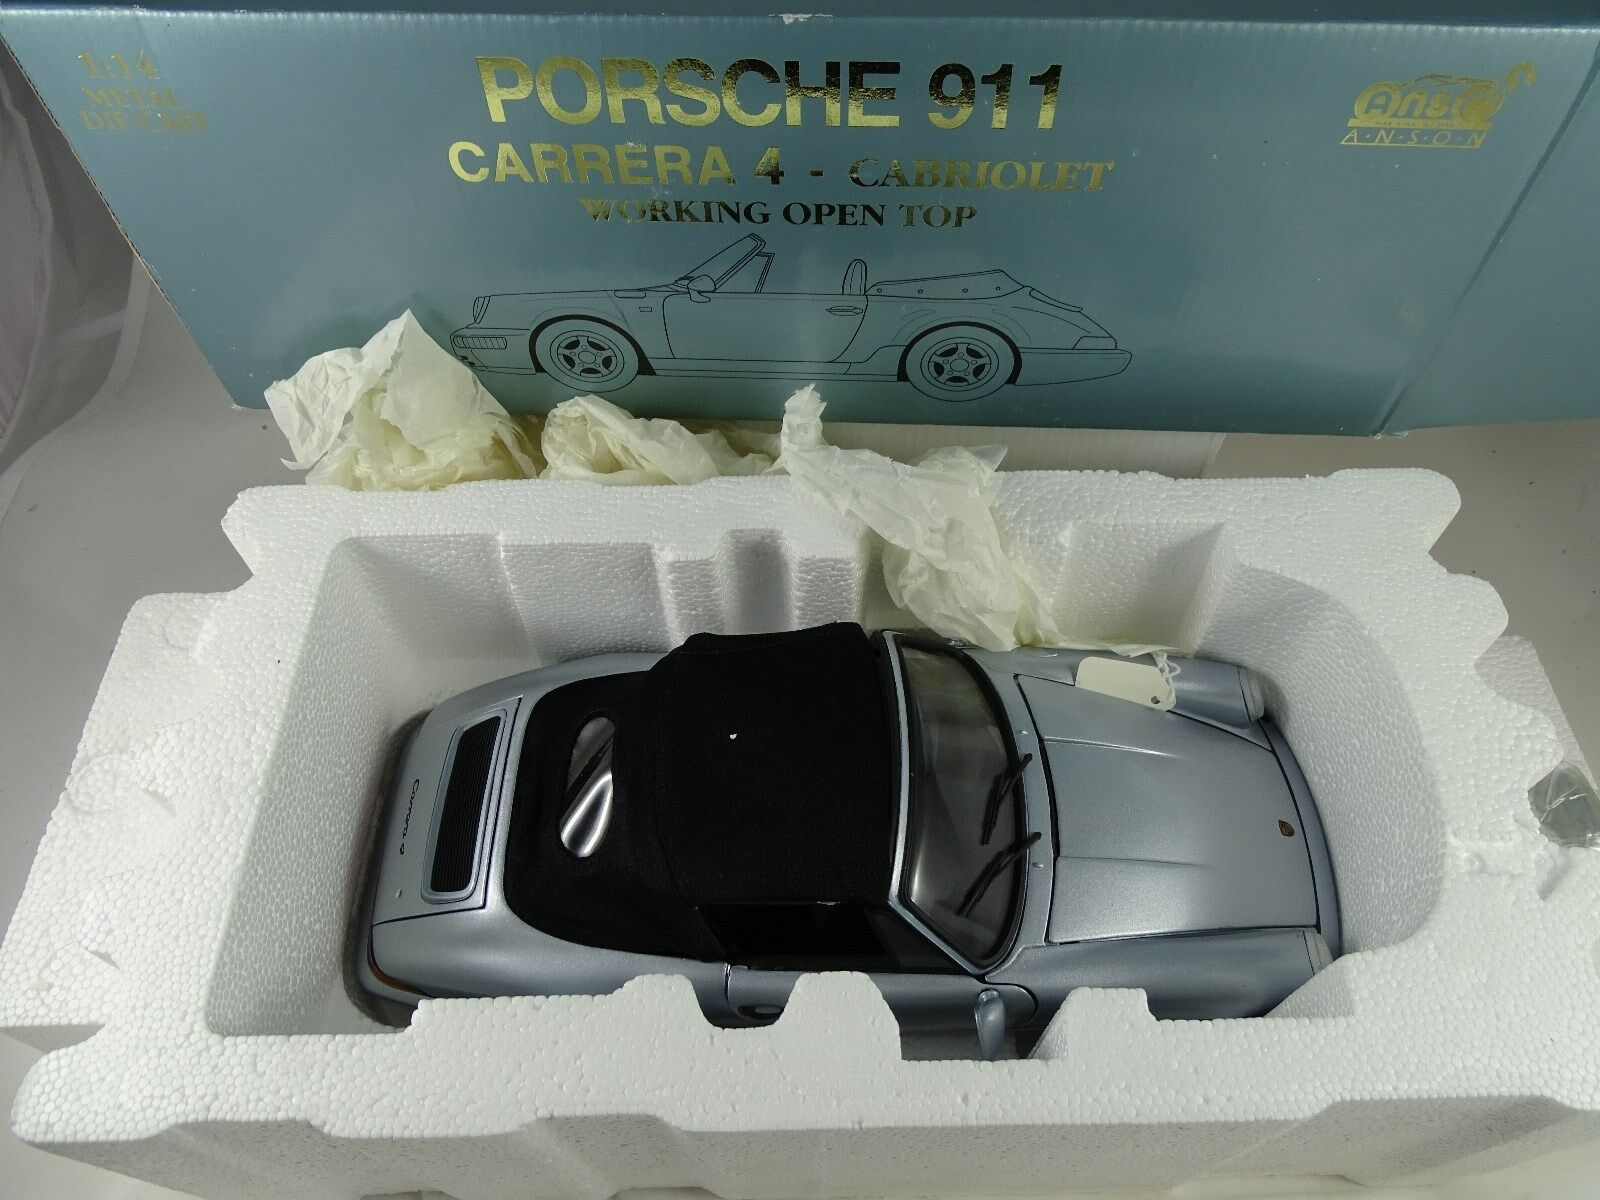 1:14 Anson-PORSCHE 911 Carrera 4-CABRIOLET working Open Top-rarità §